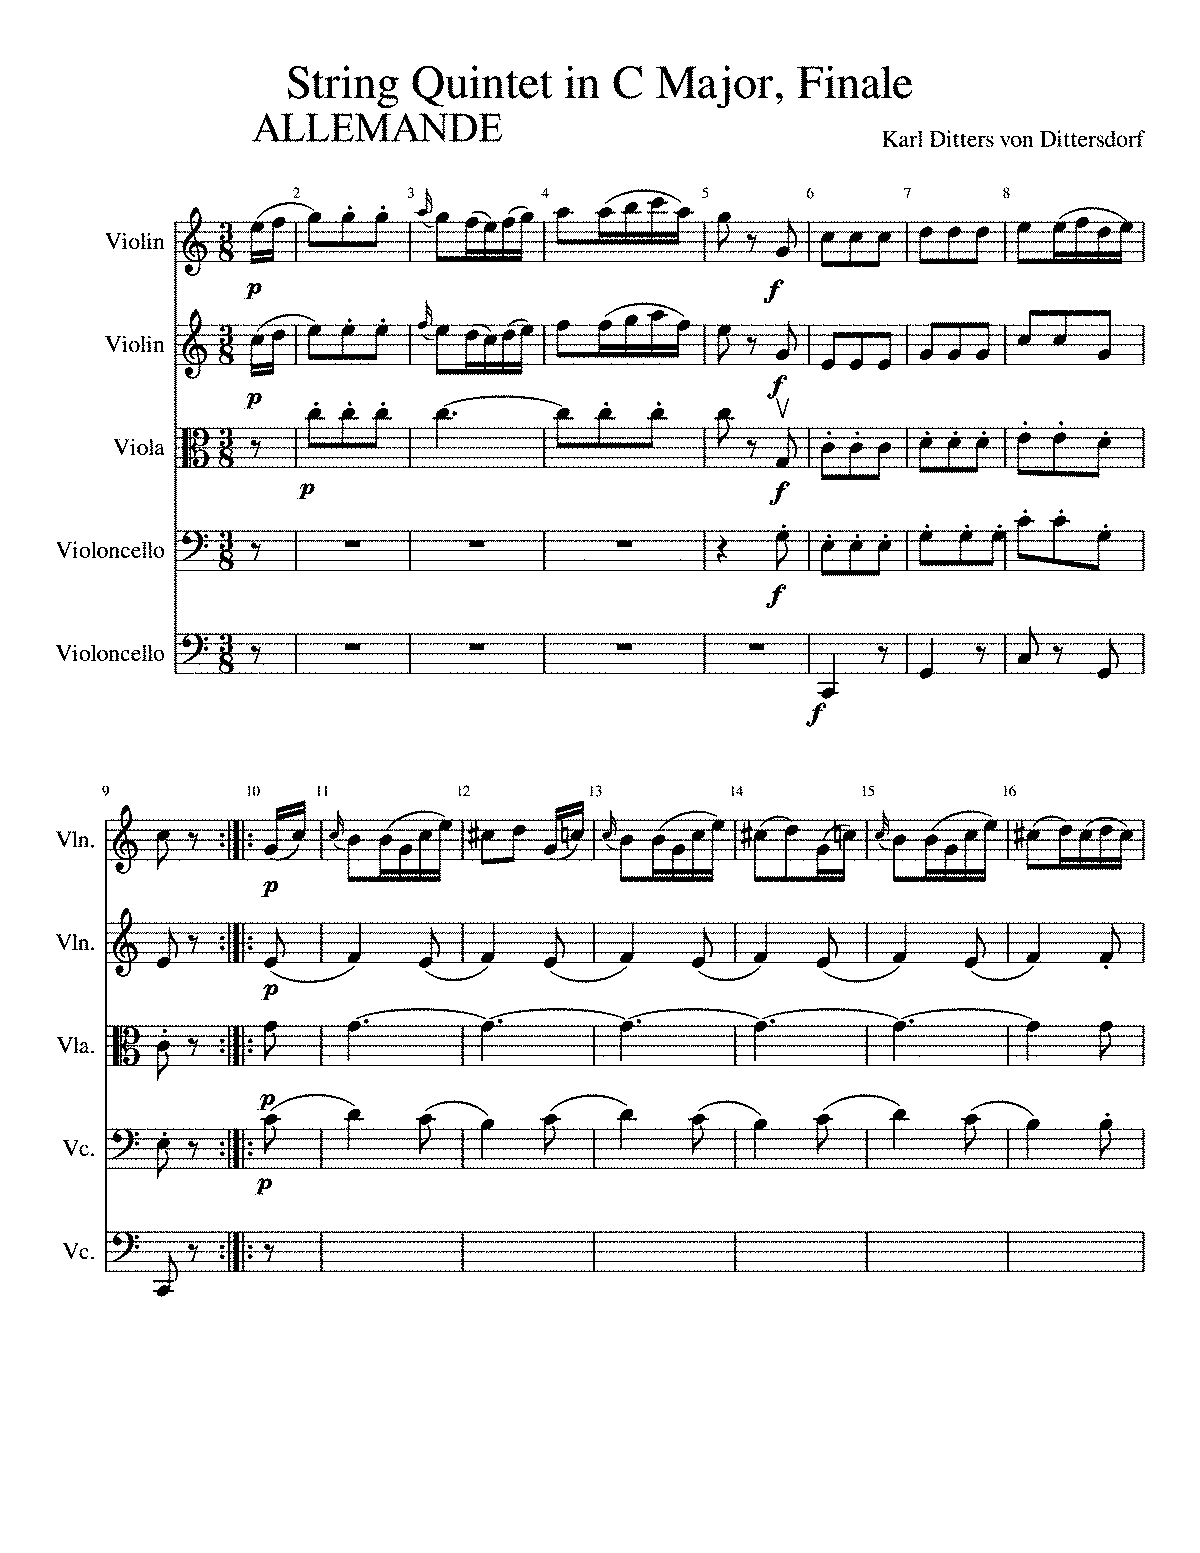 PMLP165130-Dittersdorf String Quintet in C Major, Finale Score.pdf